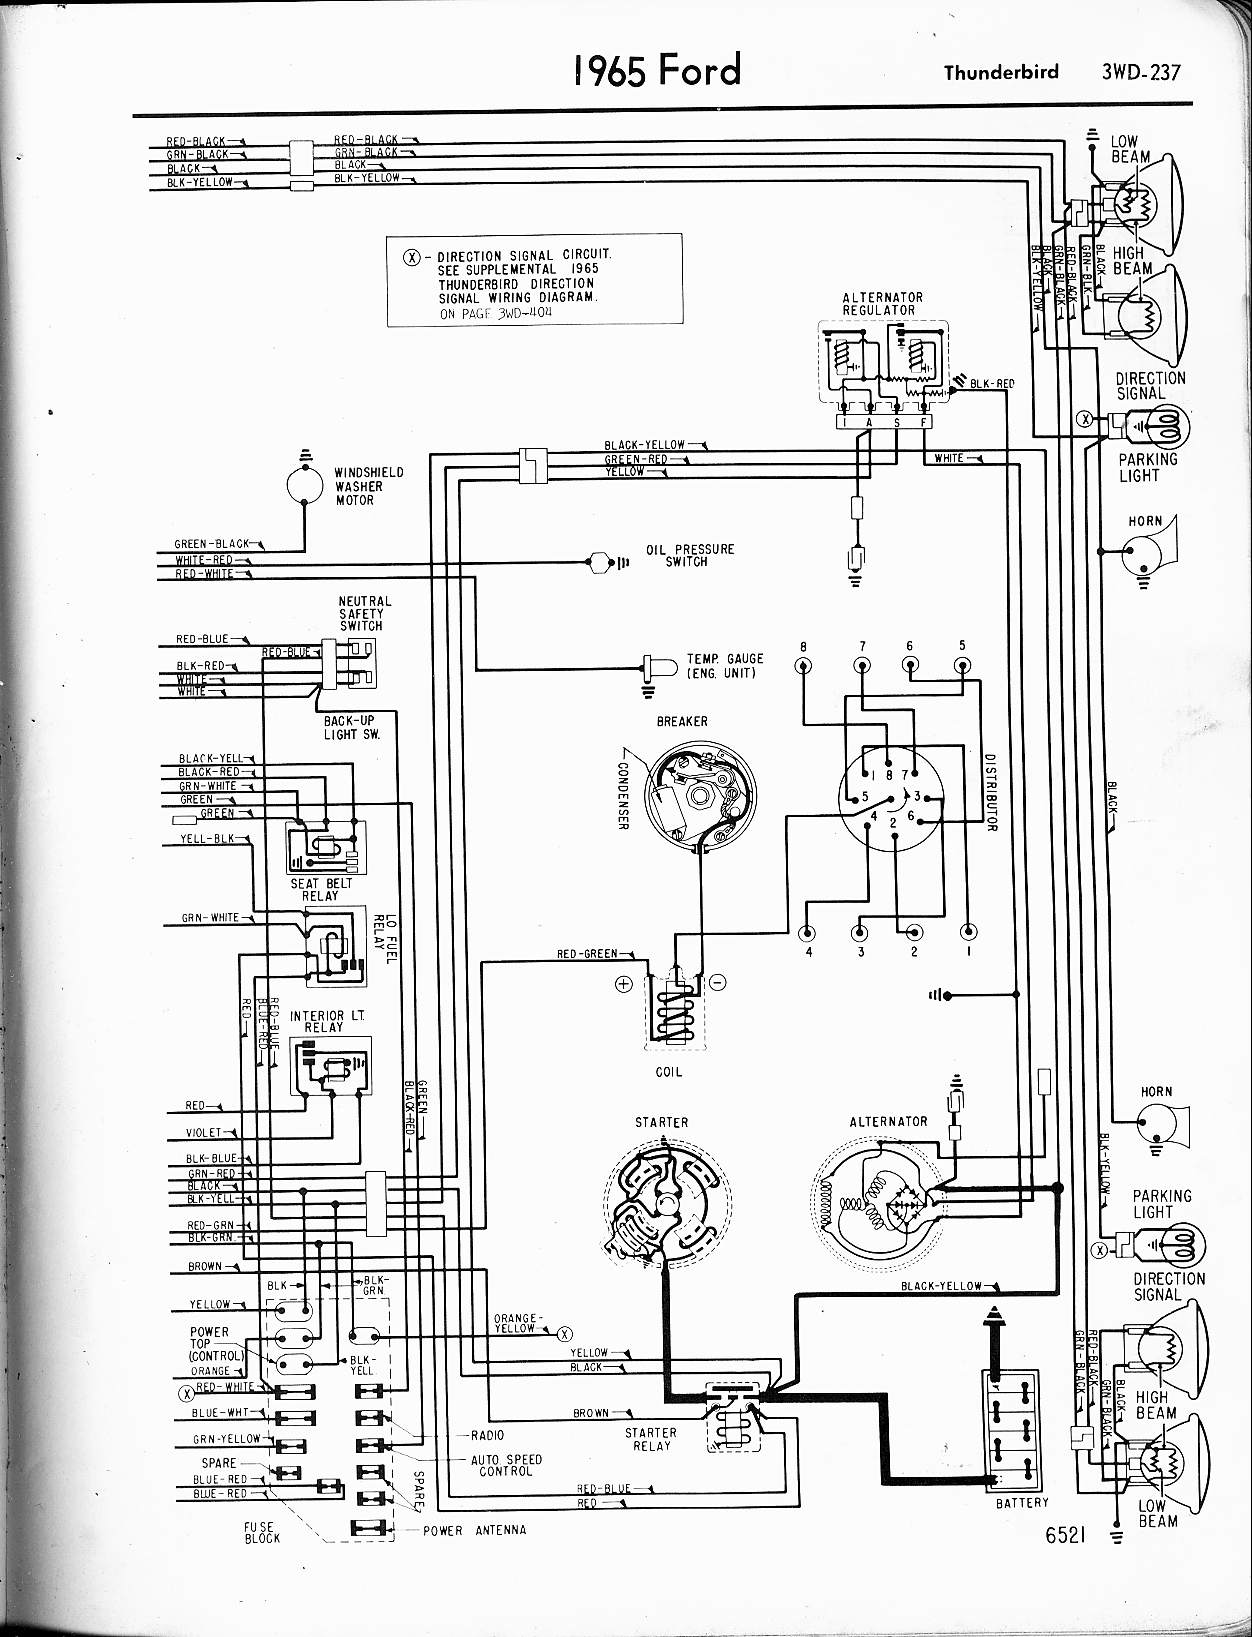 MWire5765 237 57 65 ford wiring diagrams 1965 thunderbird wiring harness at bakdesigns.co